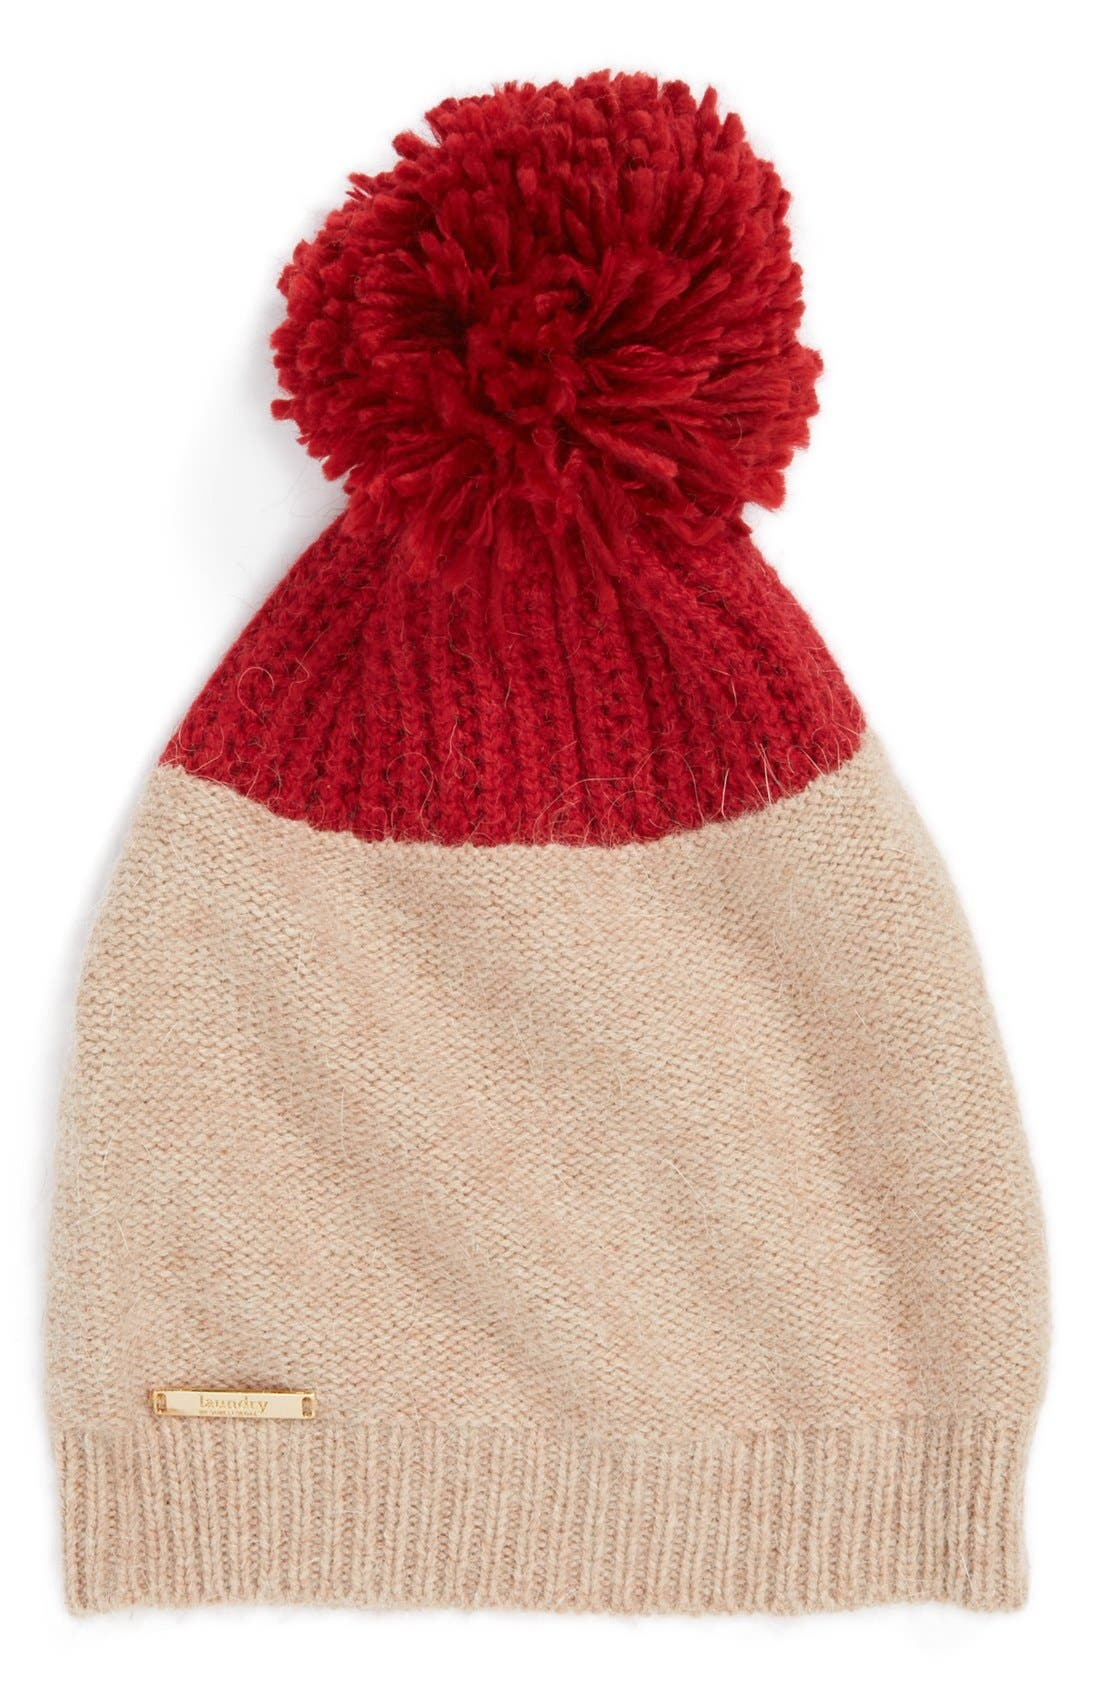 Main Image - Laundry by Shelli Segal Colorblock Beanie